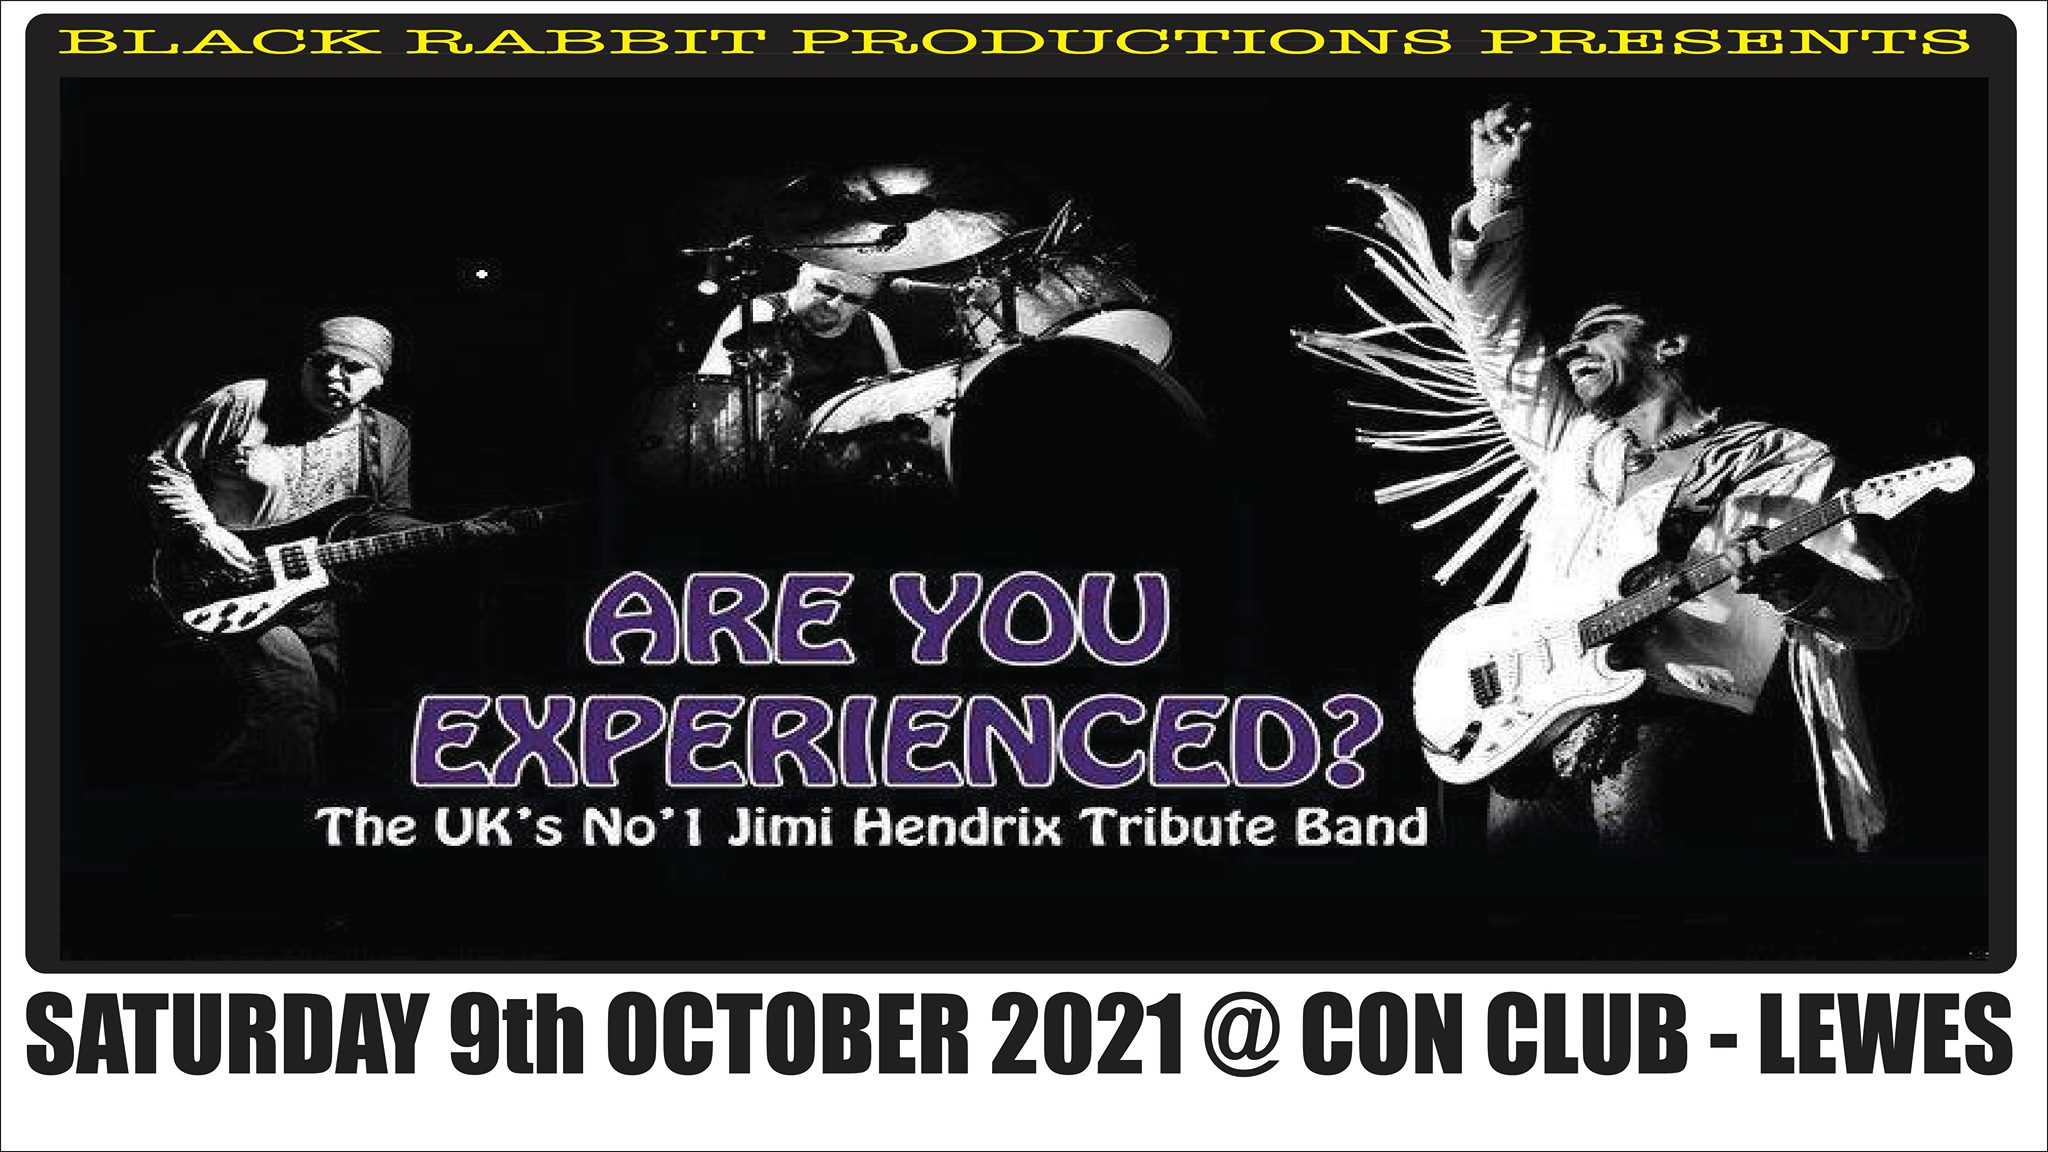 Are You Experienced? - Uk's No.1 Hendrix tribute